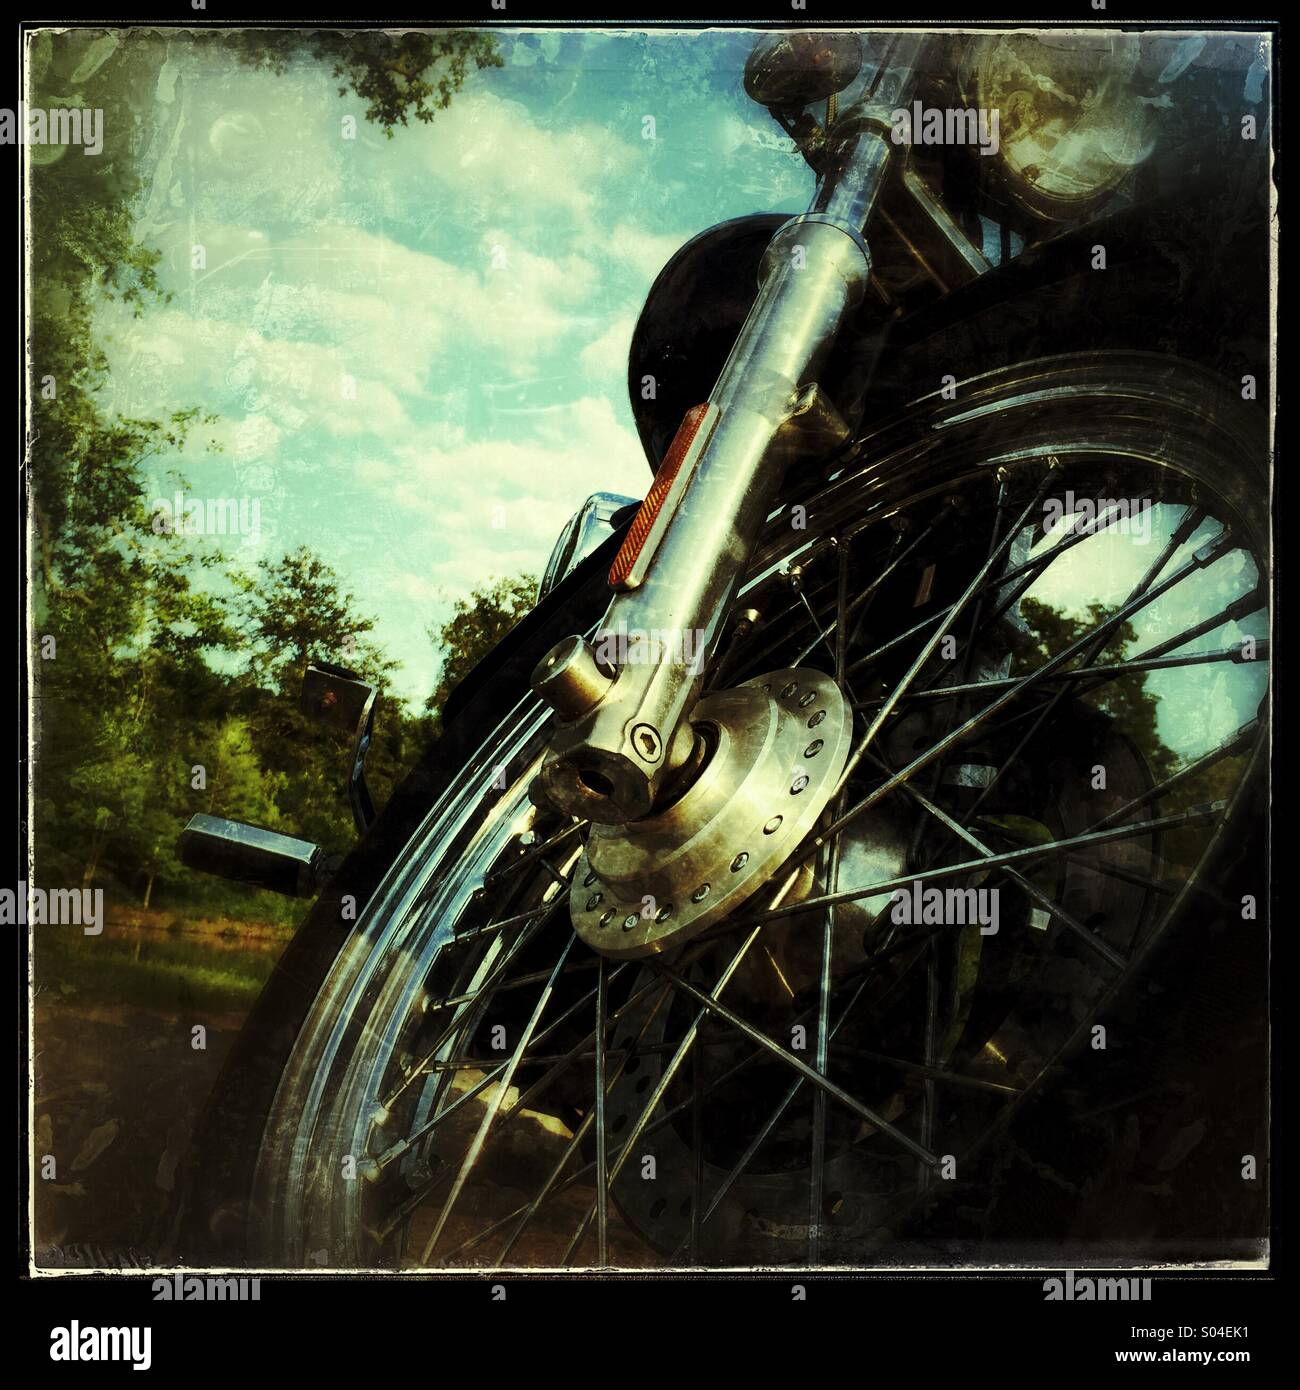 Front end of retro motorcycle grunge image - Stock Image